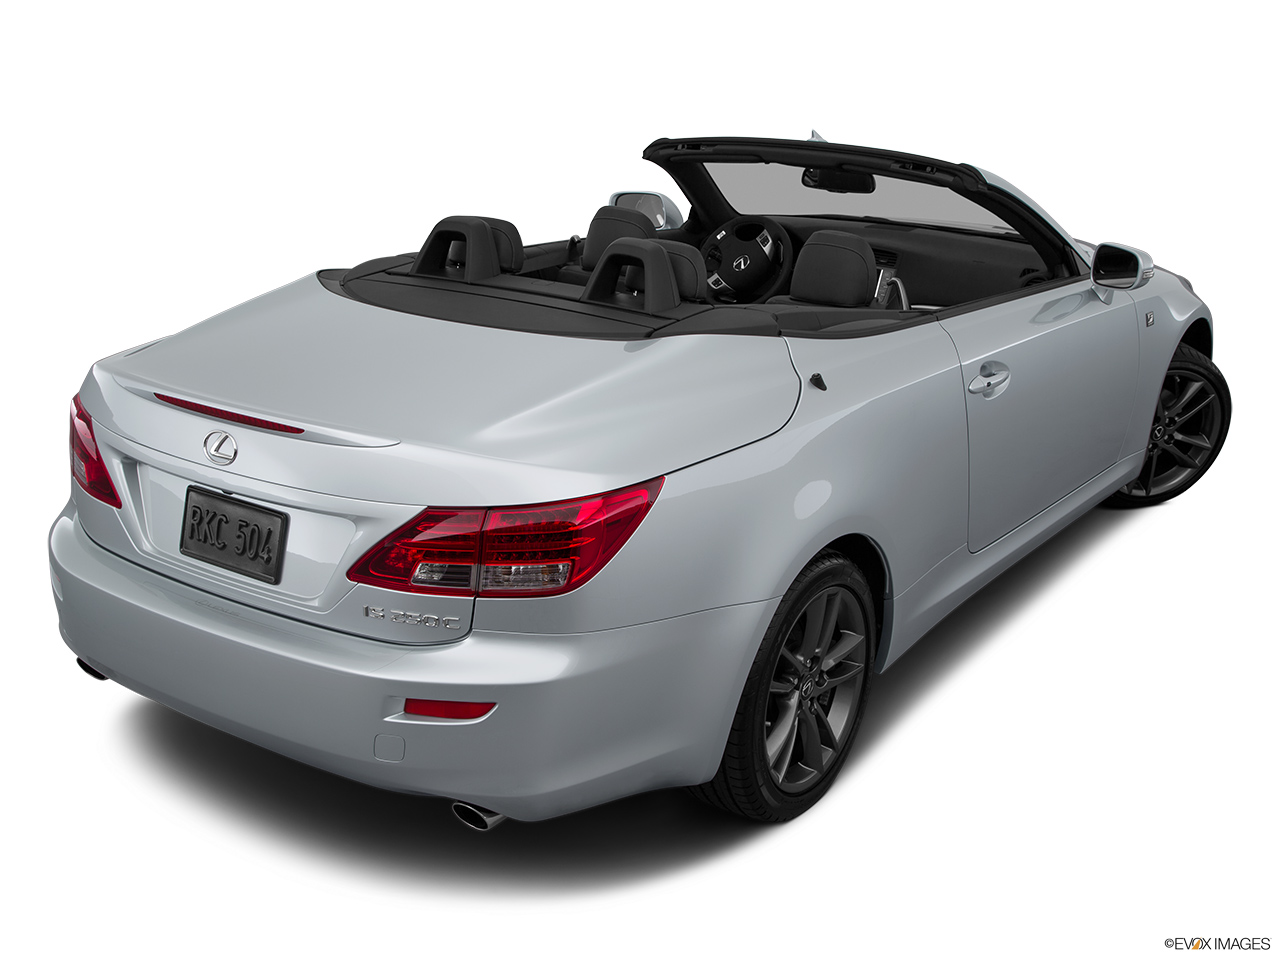 2015 Lexus IS C IS250 RWD Rear 3/4 angle view.